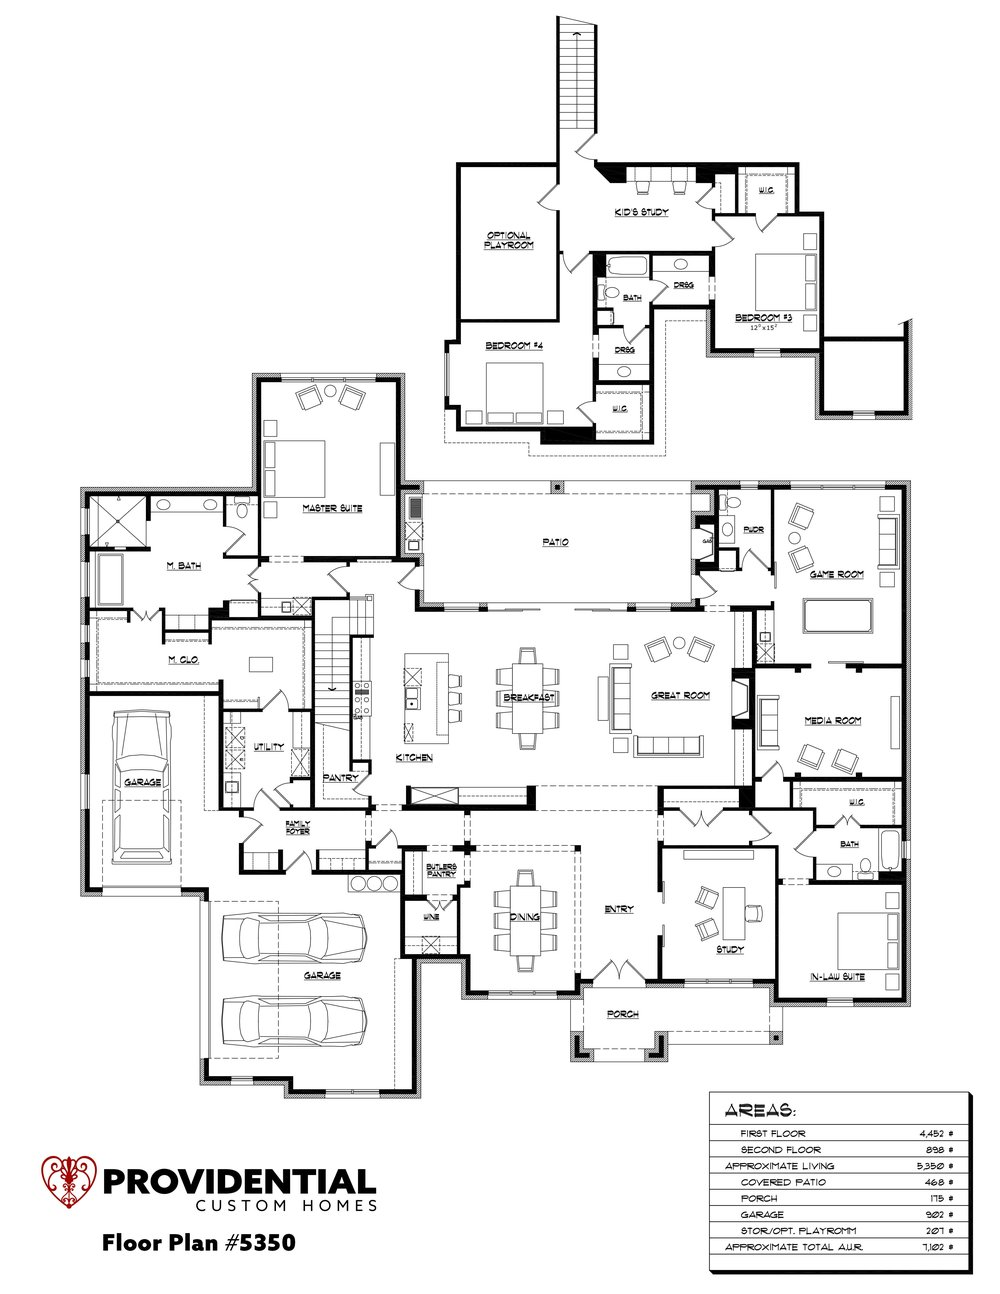 The FLOOR PLAN #5350.jpg